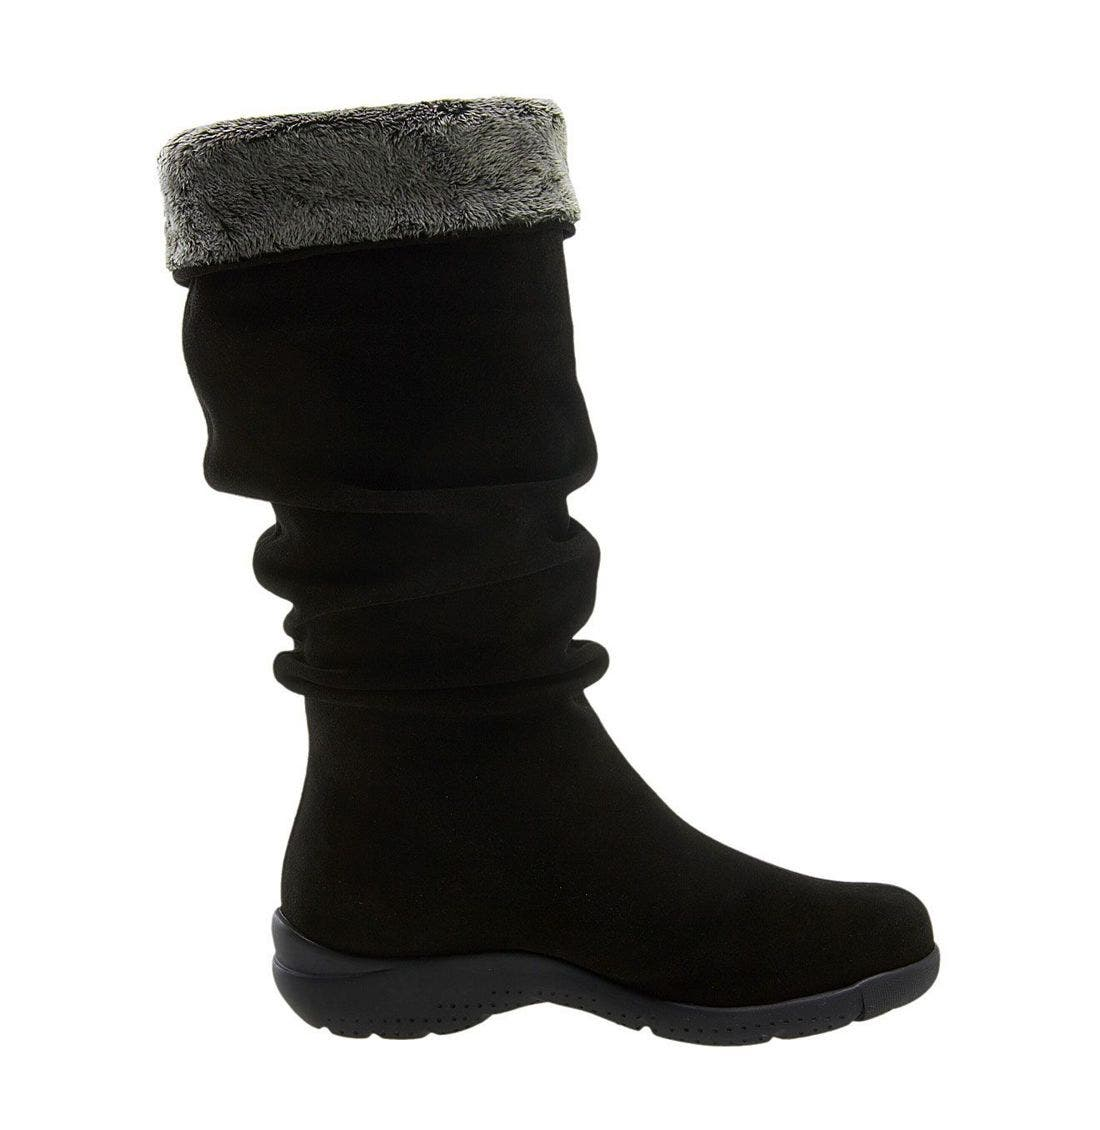 Alternate Image 2  - La Canadienne 'Trevis' Waterproof Boot